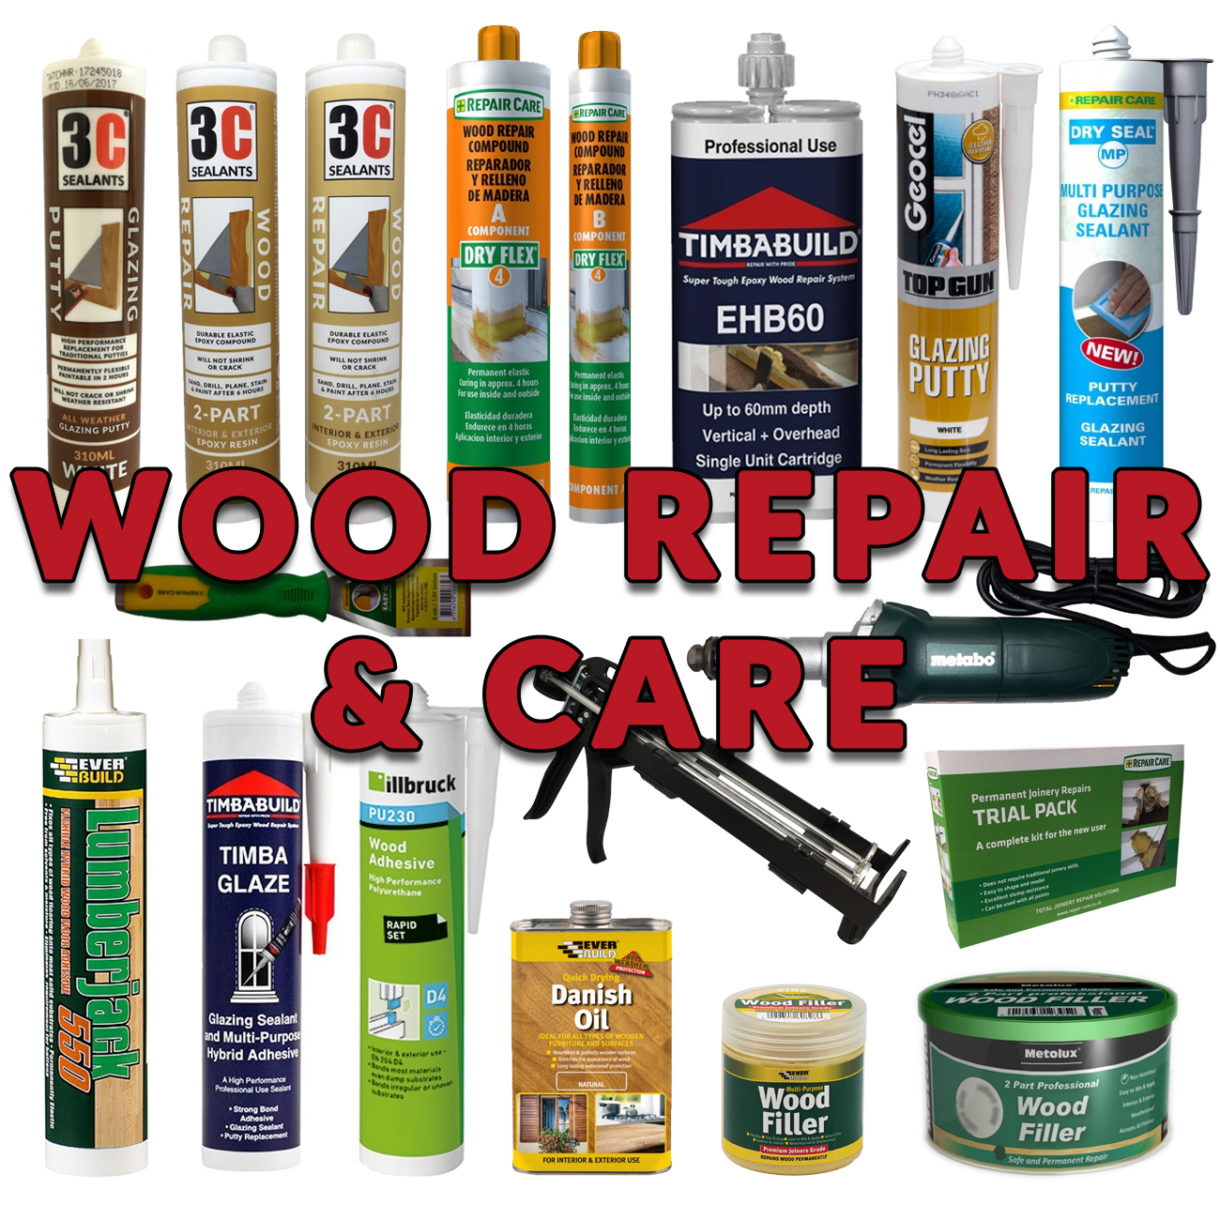 WOOD REPAIR & CARE